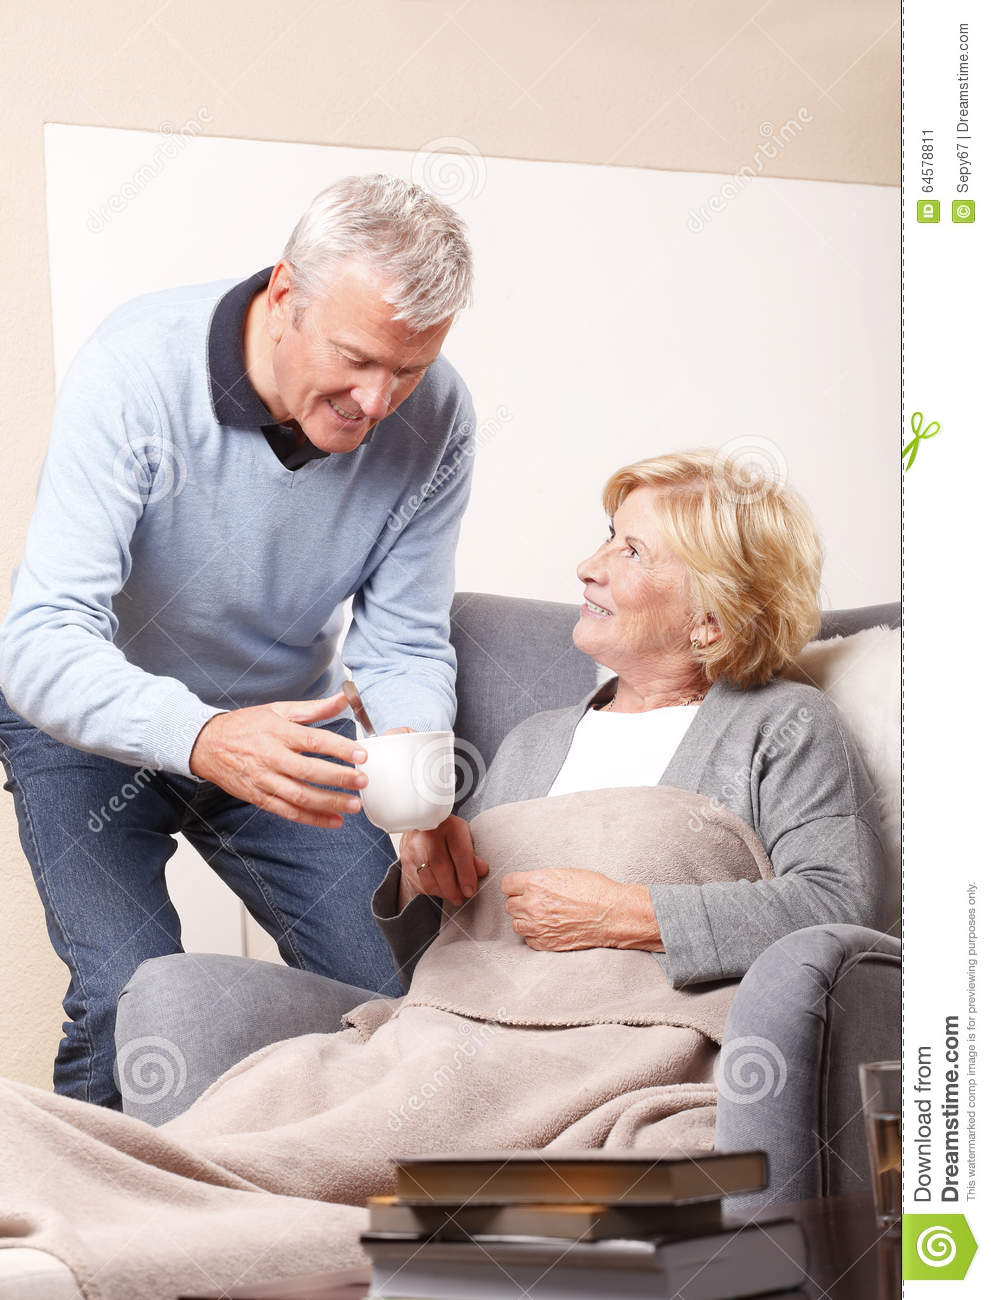 home caregiver and senior patient stock photo